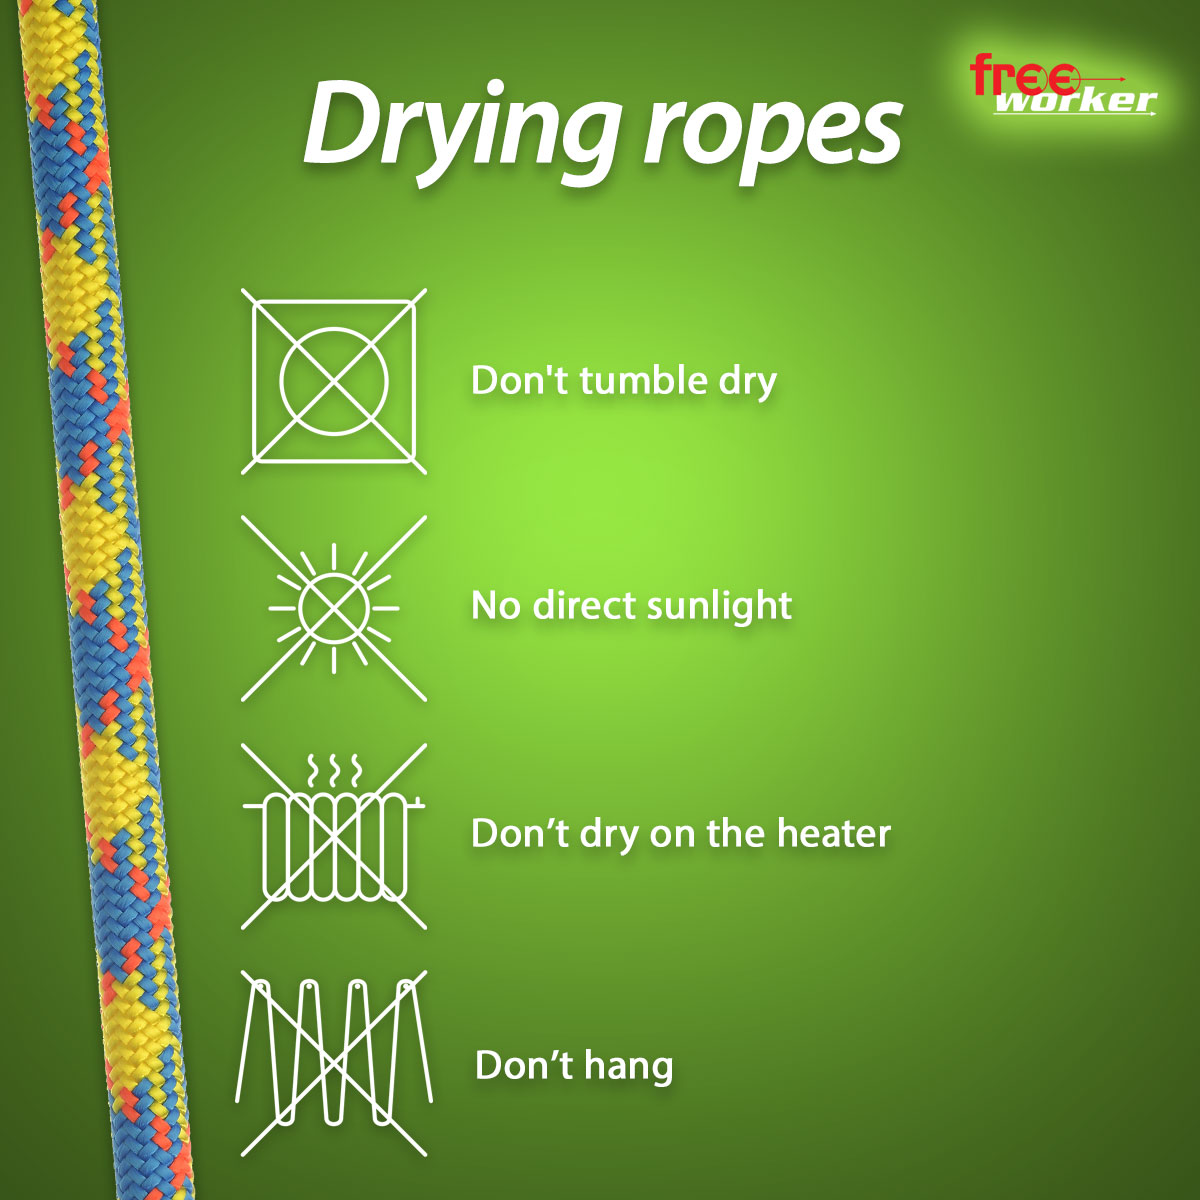 Drying ropes the right way